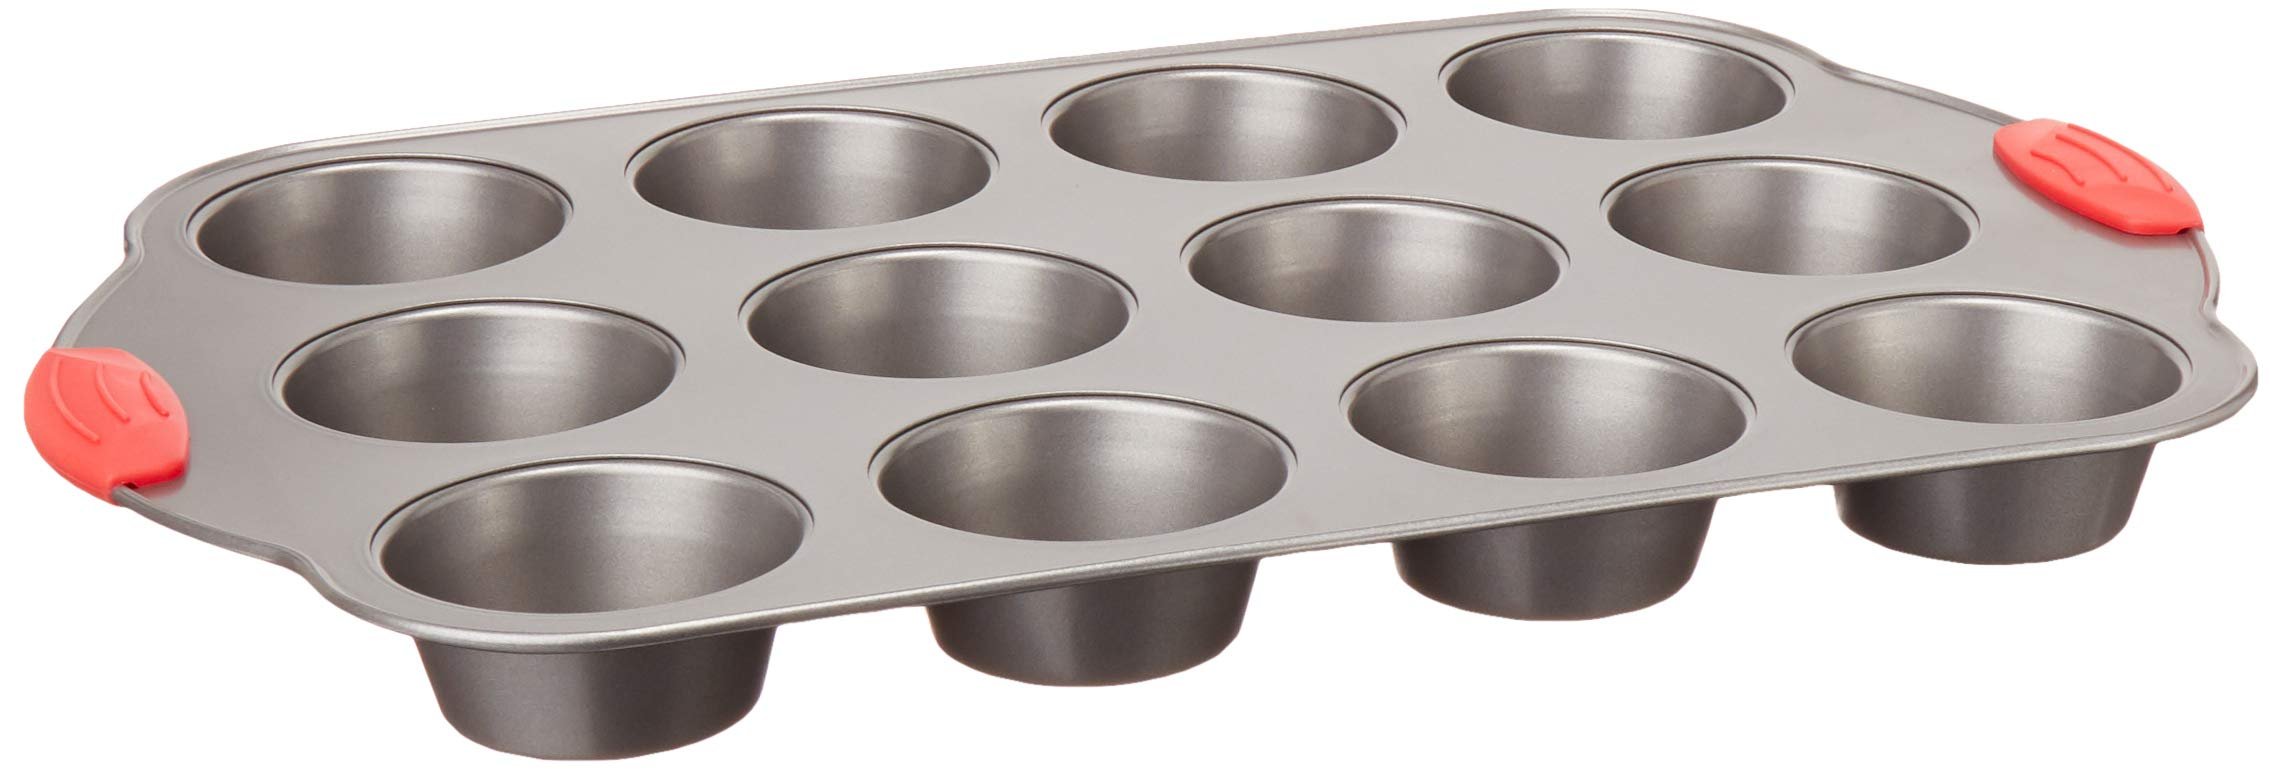 Amazon Basics Non-Stick 12-Cup Muffin Pan, Gray with Red Grips